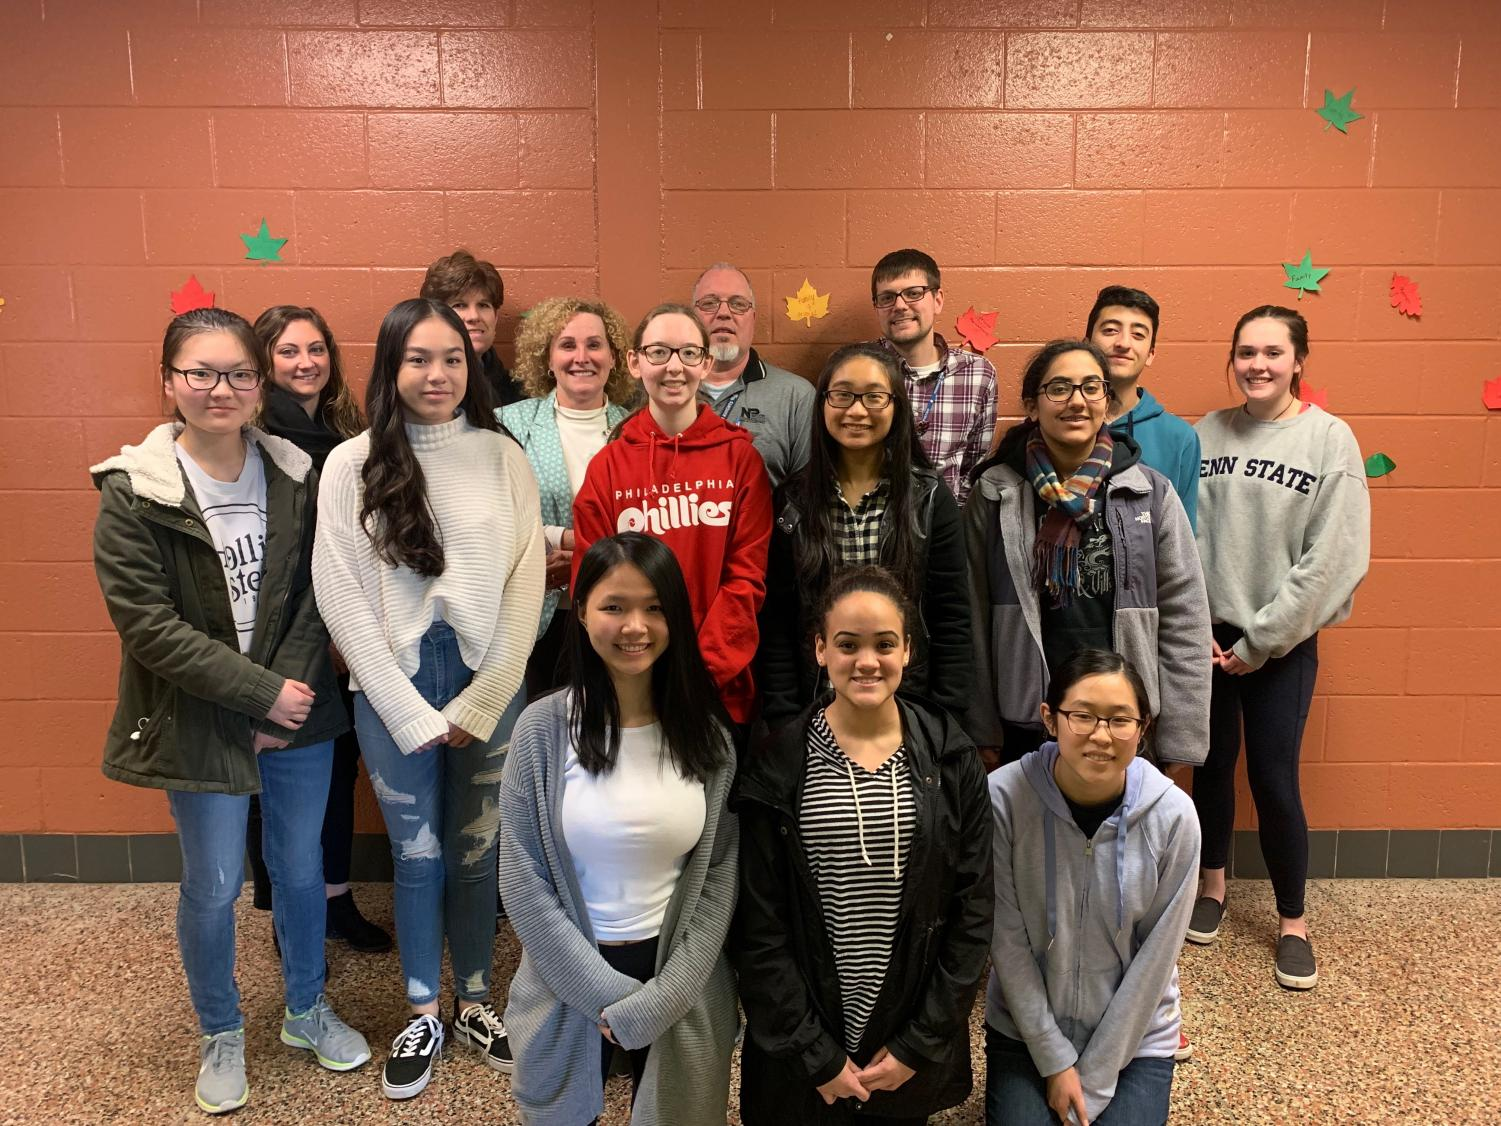 Members of the Enact Club pose for a picture after their meeting with North Penn administration about reducing waste in the school cafeteria.